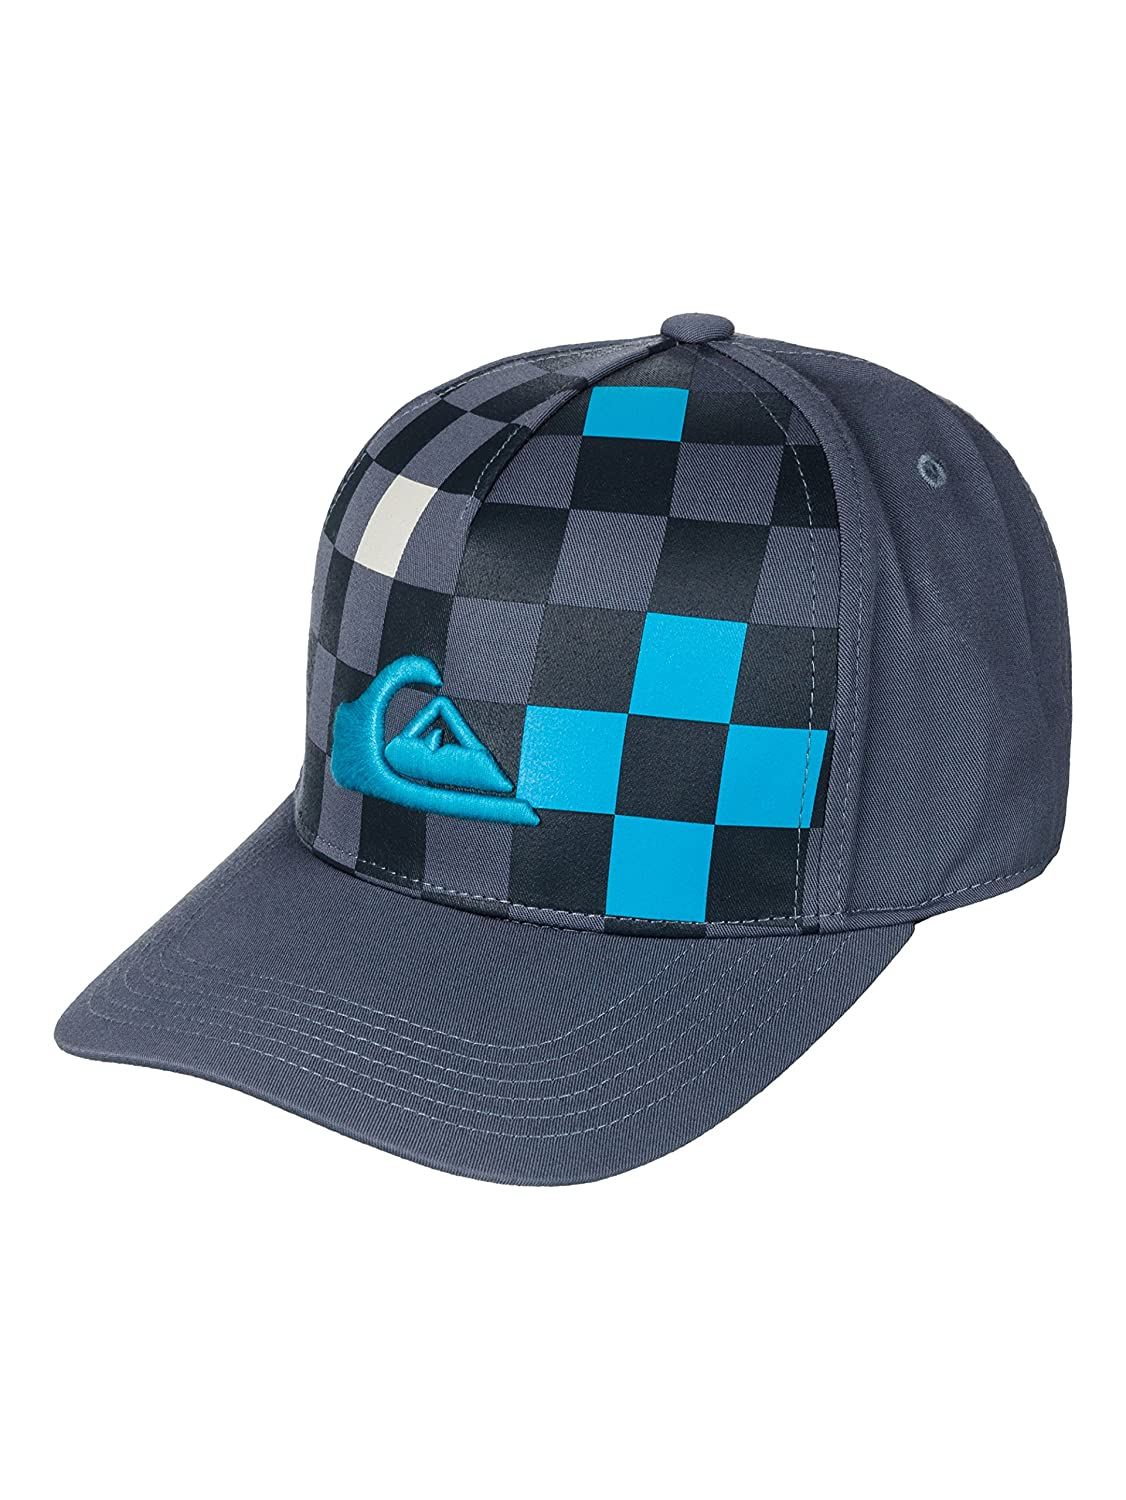 Quiksilver First Pintails - Gorra para Hombre, Color Gris, Talla ...